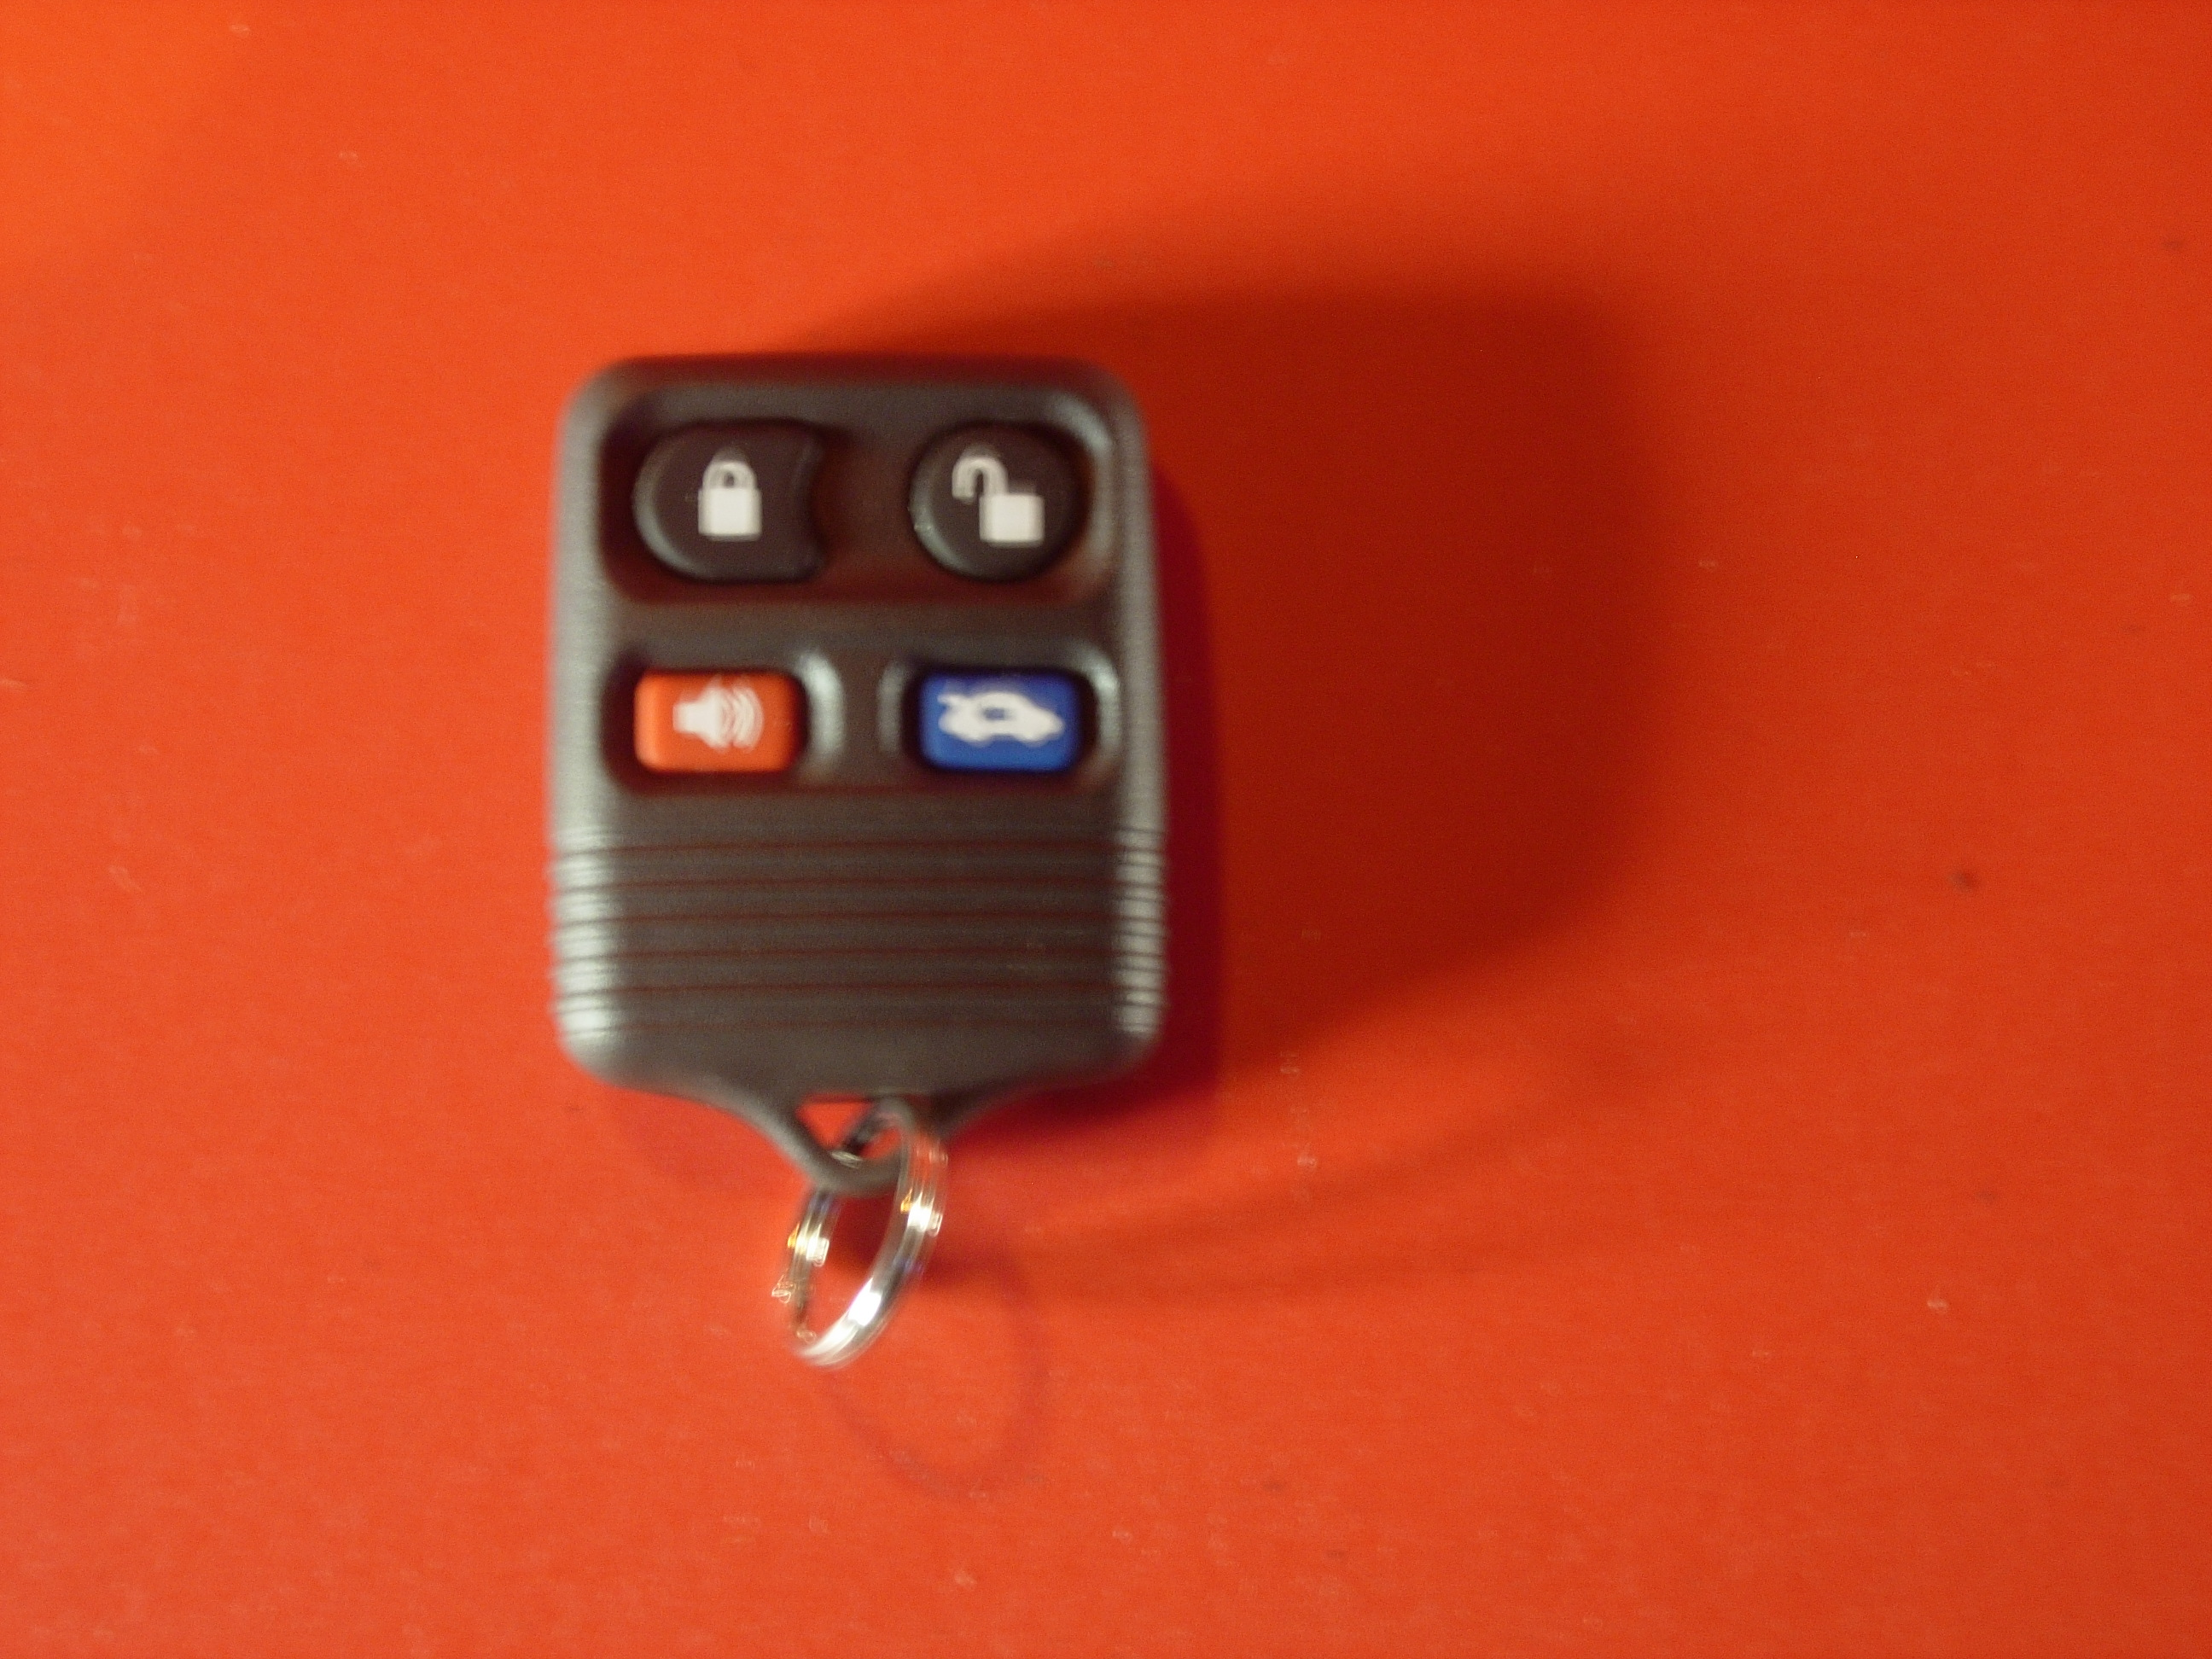 Keyfob remote 98-02 Town car inc programing instructions